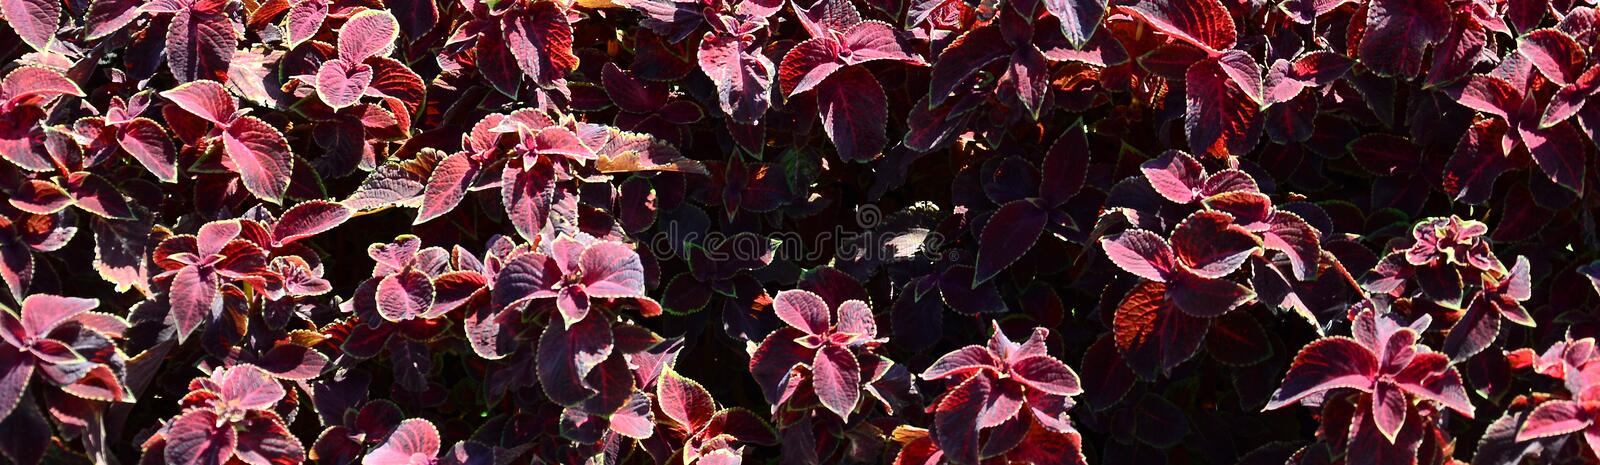 Painted nettle, decorative variegated leaves background. Red and green leaves of the coleus plant royalty free stock image